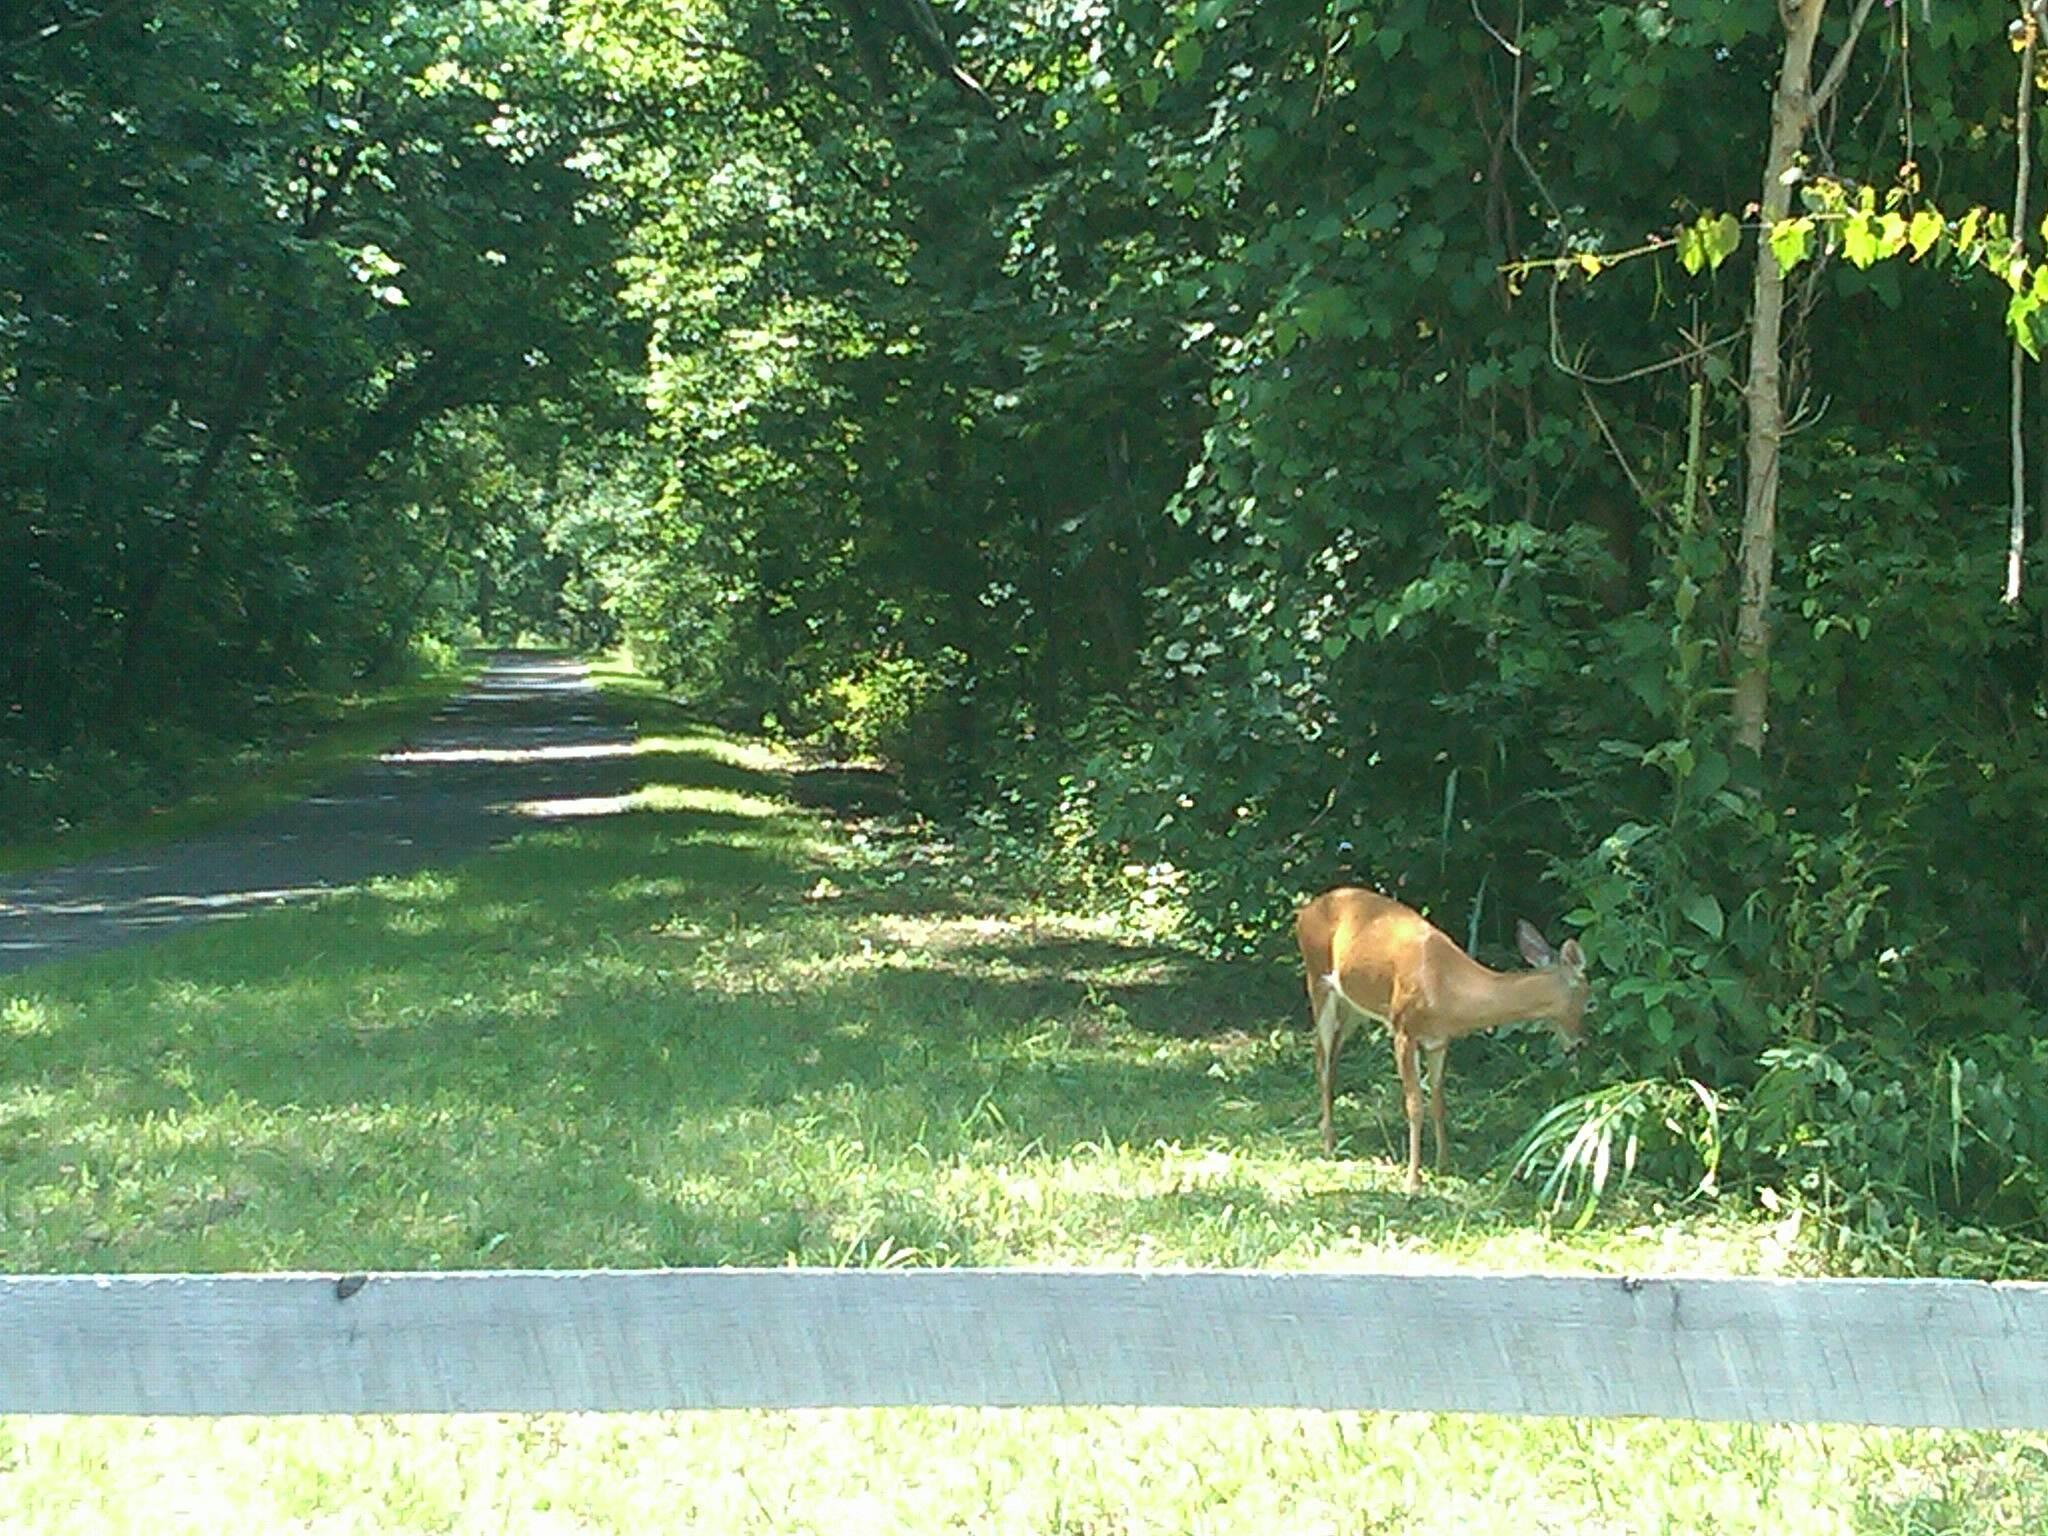 Jackson River Scenic Trail Deer on the Jackson River Scenic Trail 3